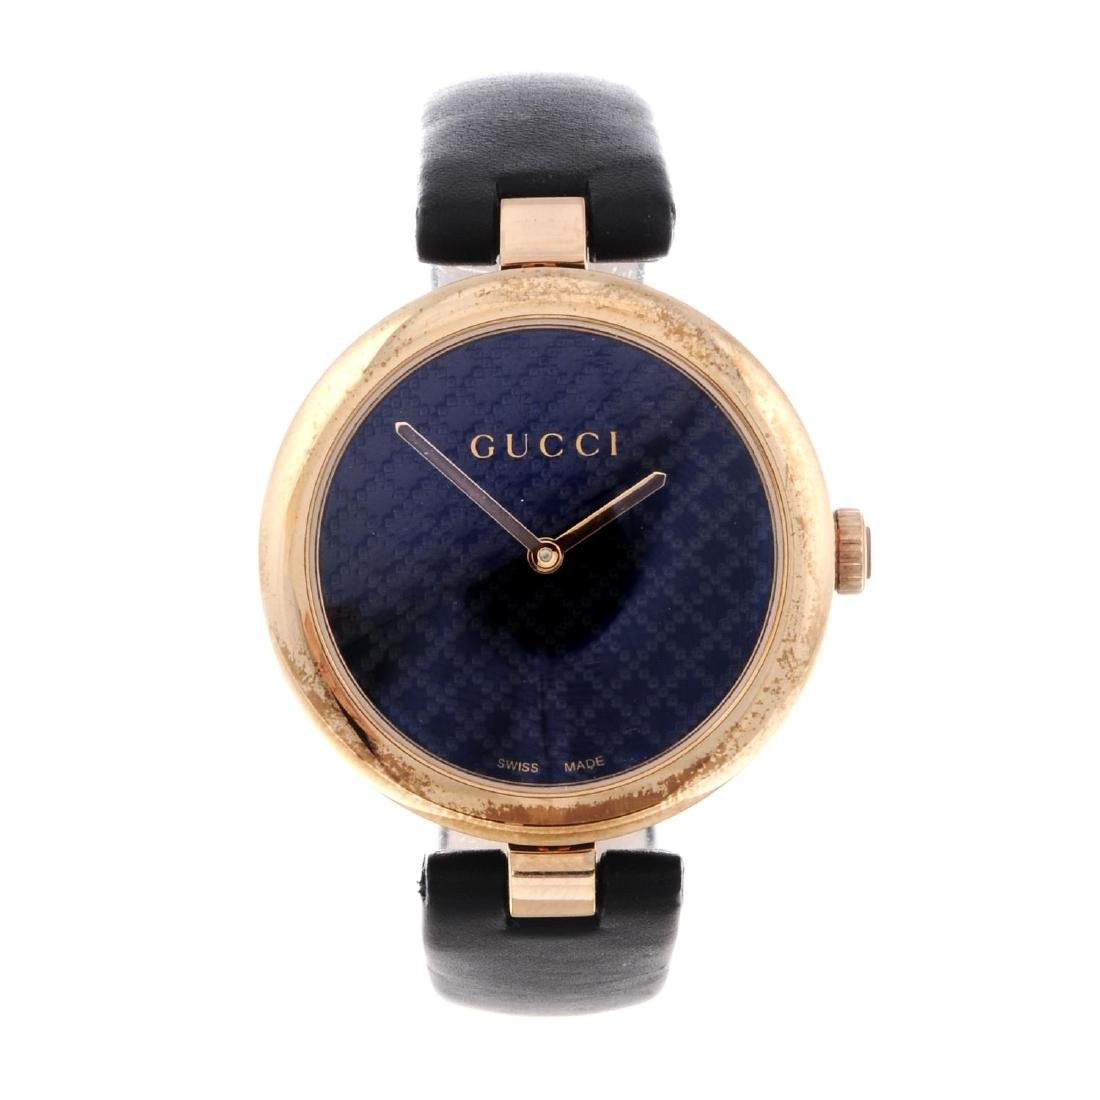 GUCCI - a lady's Diamantissima wrist watch. Gold plated